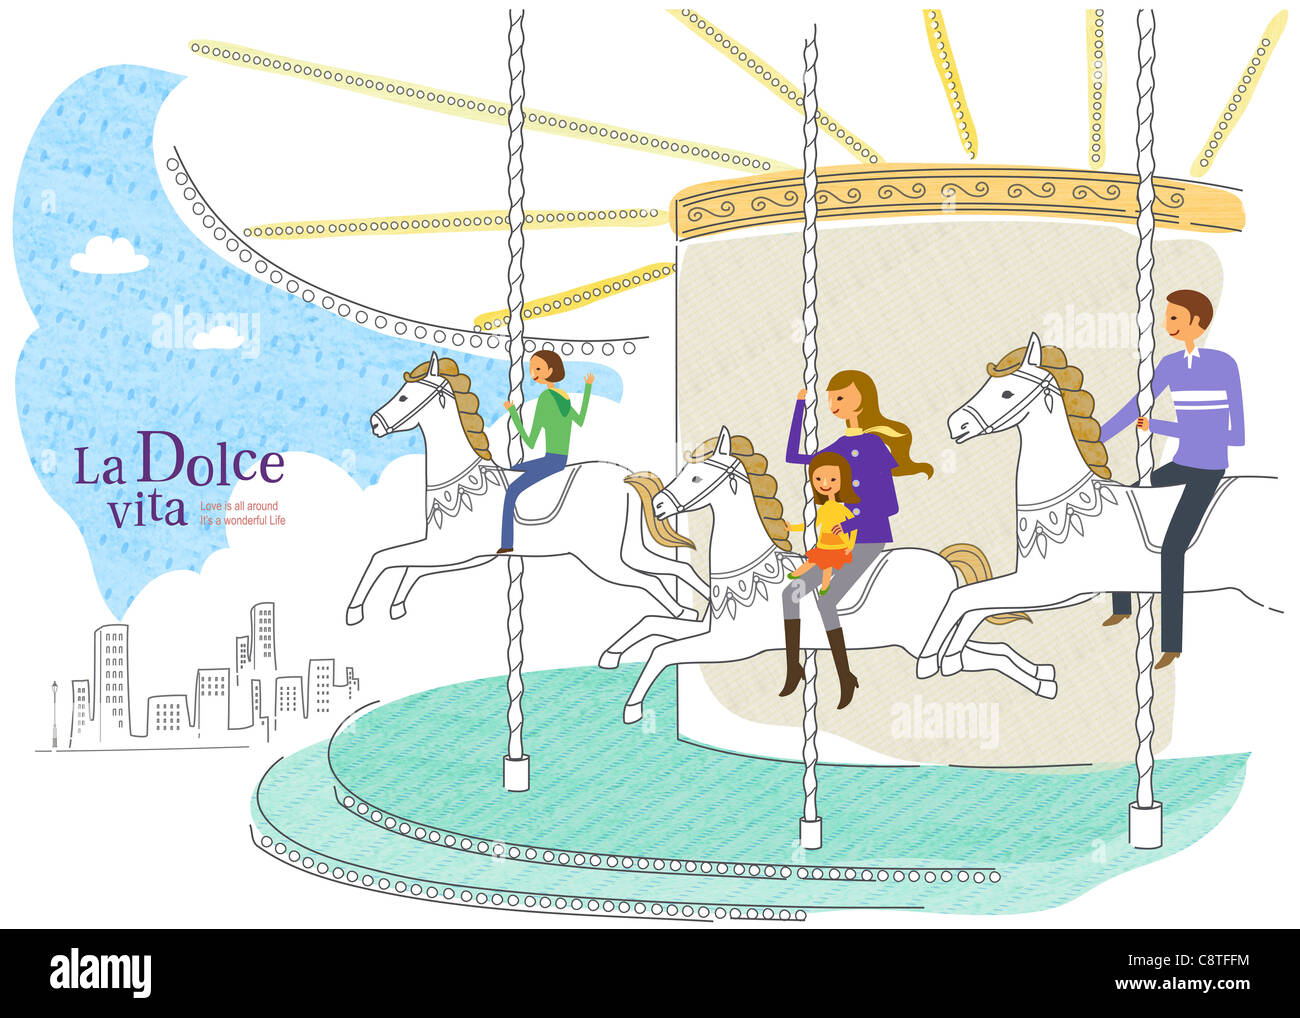 People Sitting On Merry-go-round - Stock Image